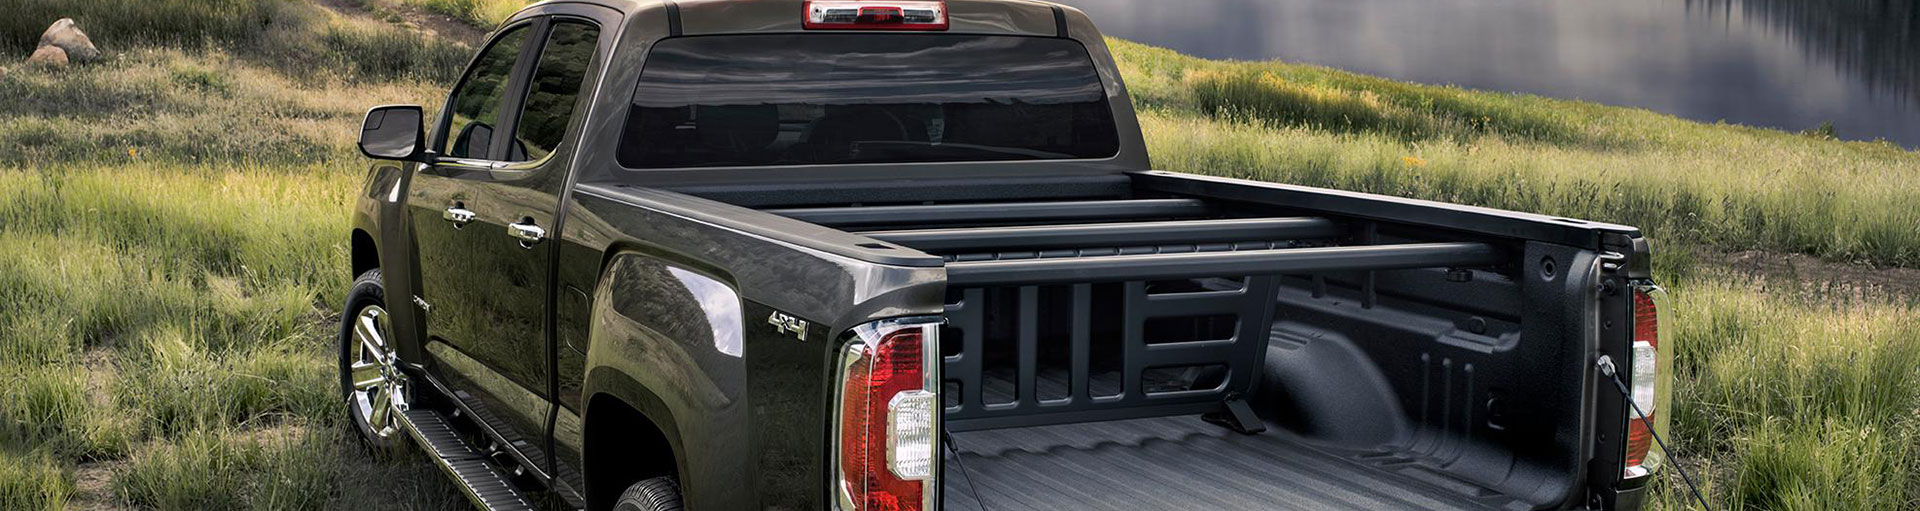 Findlay Buick GMC Accessories Department